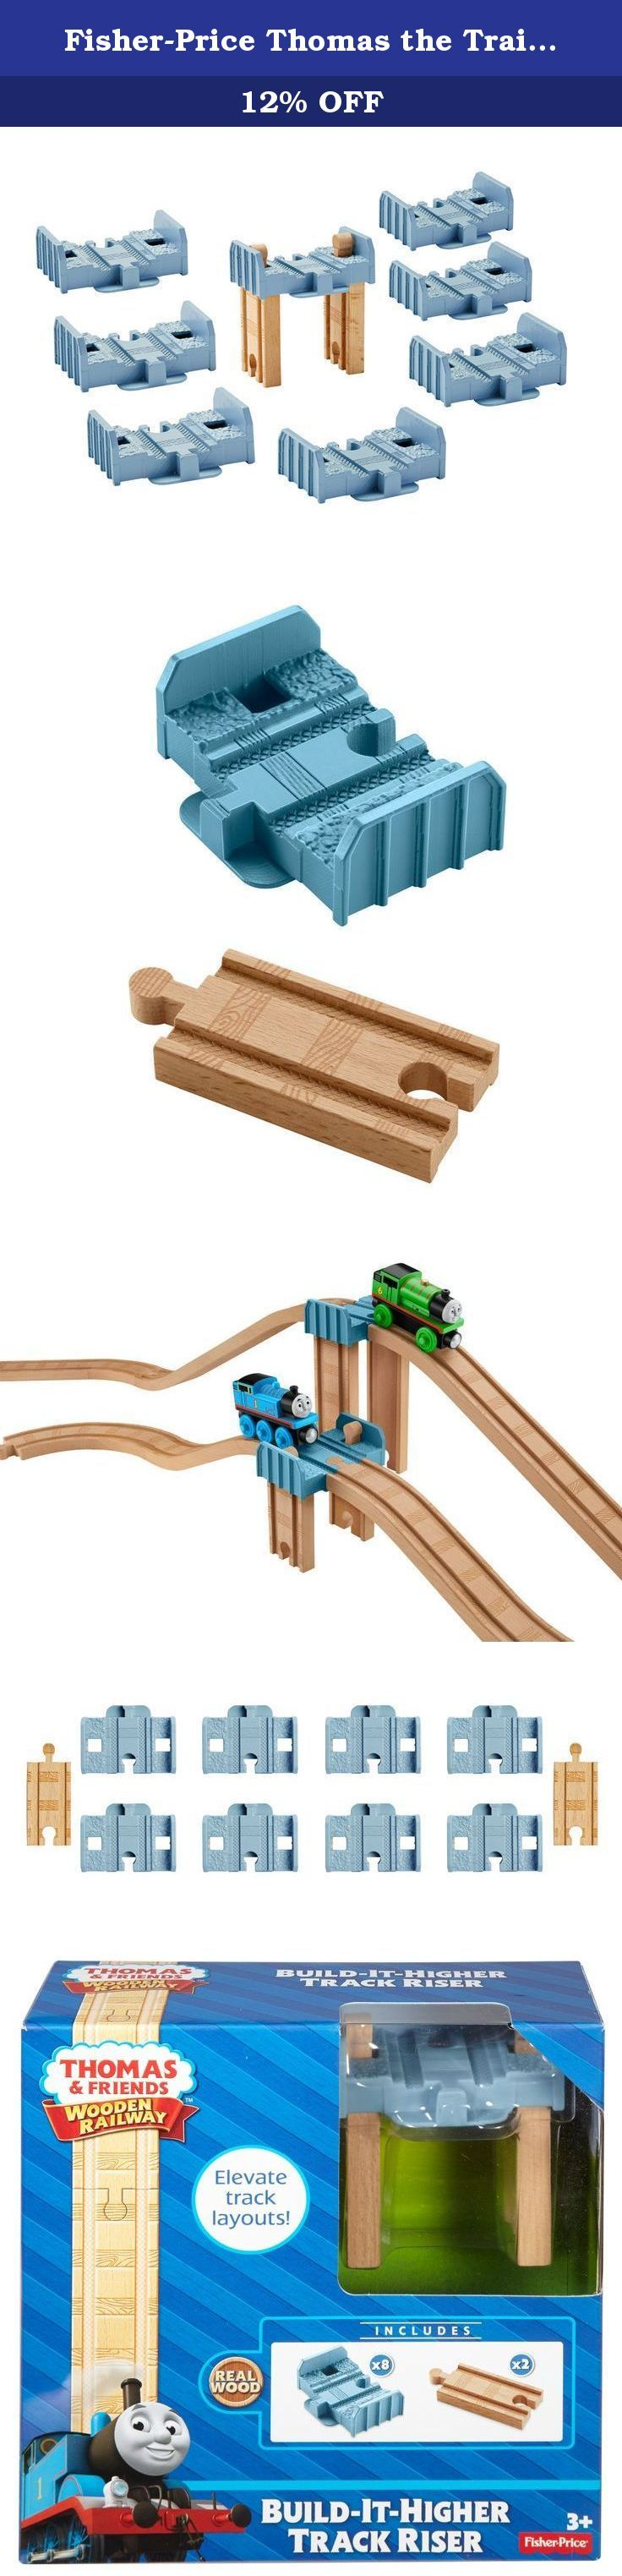 Fisher-Price Thomas the Train Wooden Railway Build-it-Higher Track Riser. Your child can elevate their Wooden Railway track layouts with this track pack that allows them to create track risers using pieces from their collection. The included plastic 2-inch track piece can be combined with two 3-inch straight tracks to make a level-1 track riser. The plastic piece can also be combined with two 8-inch tracks (sold separately and subject to availability) to make a level 3 riser. The...